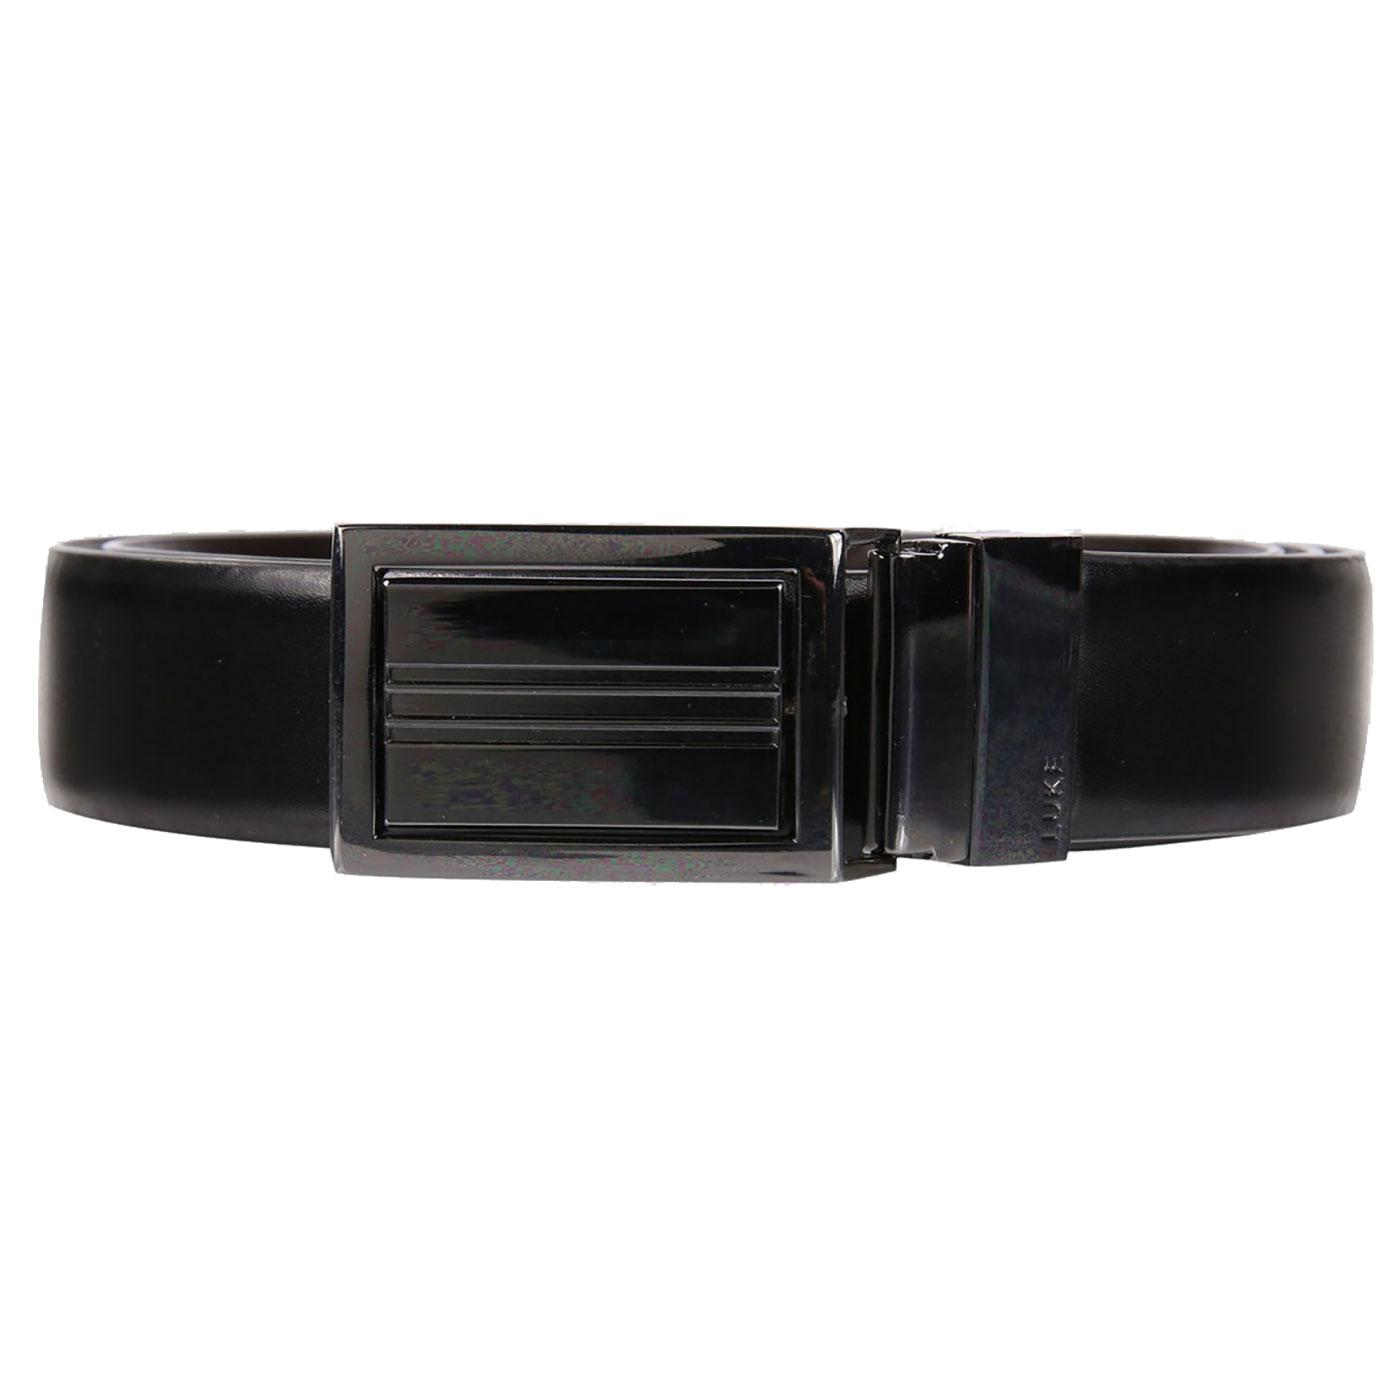 Jimmy's LUKE Retro Reversible Belt - Black/Brown